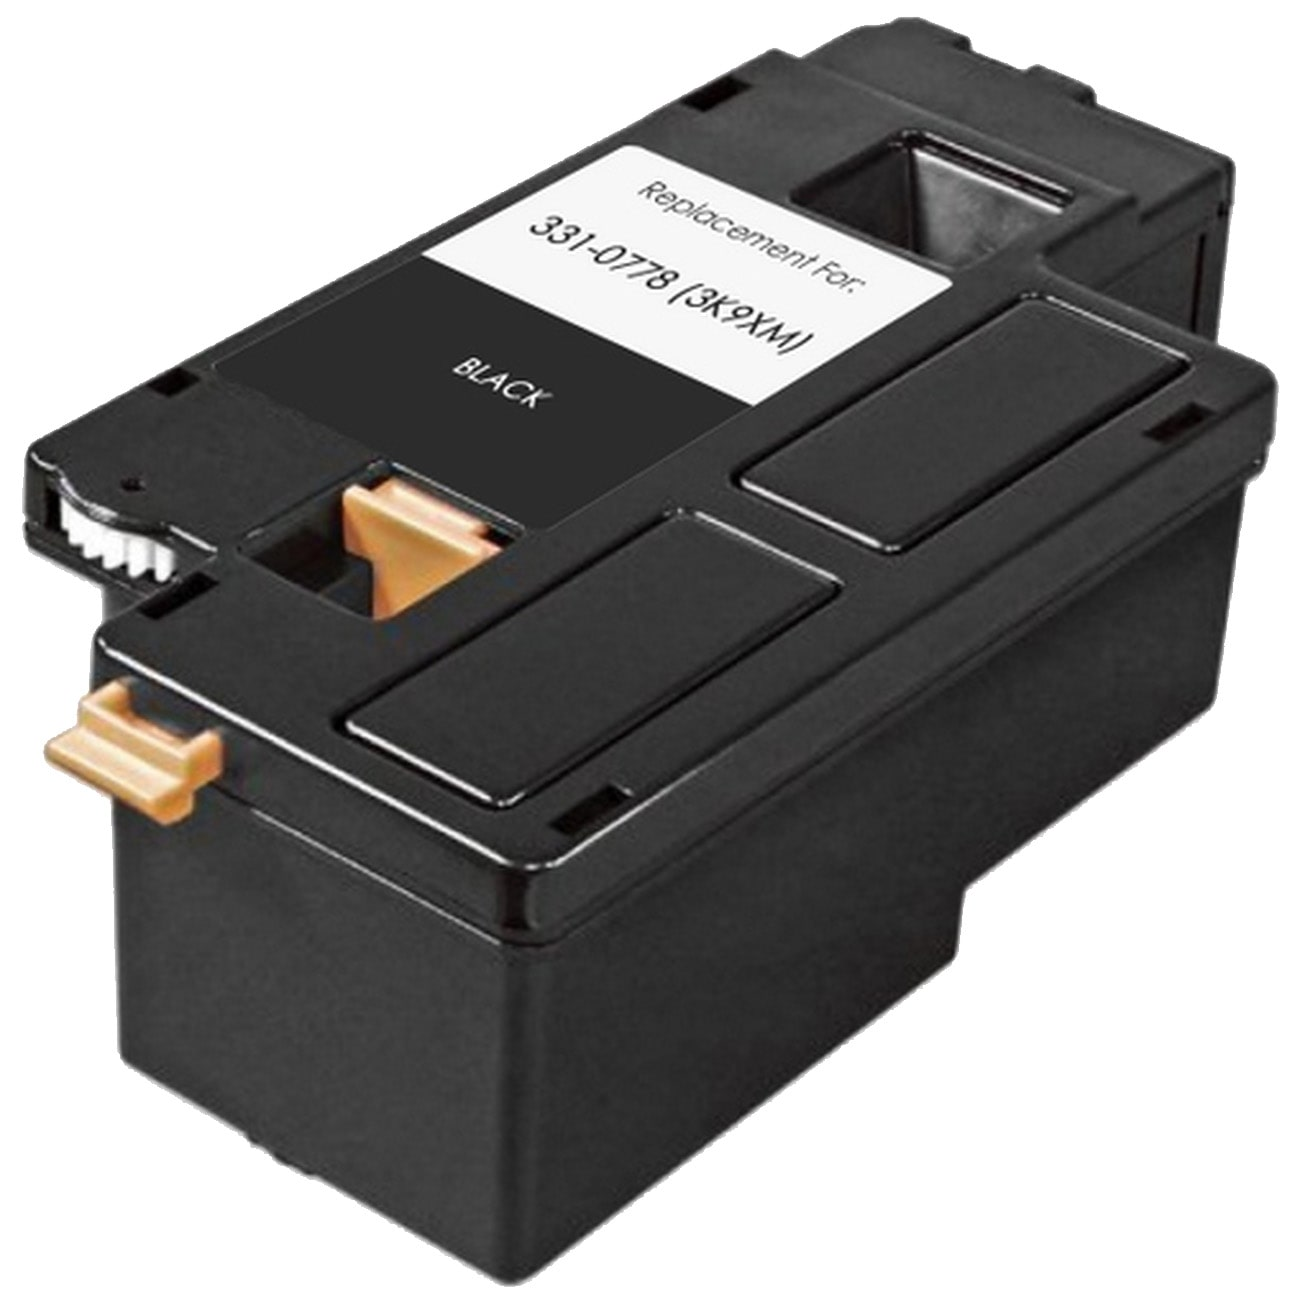 331-0778 Toner Cartridge - Dell Compatible (Black)